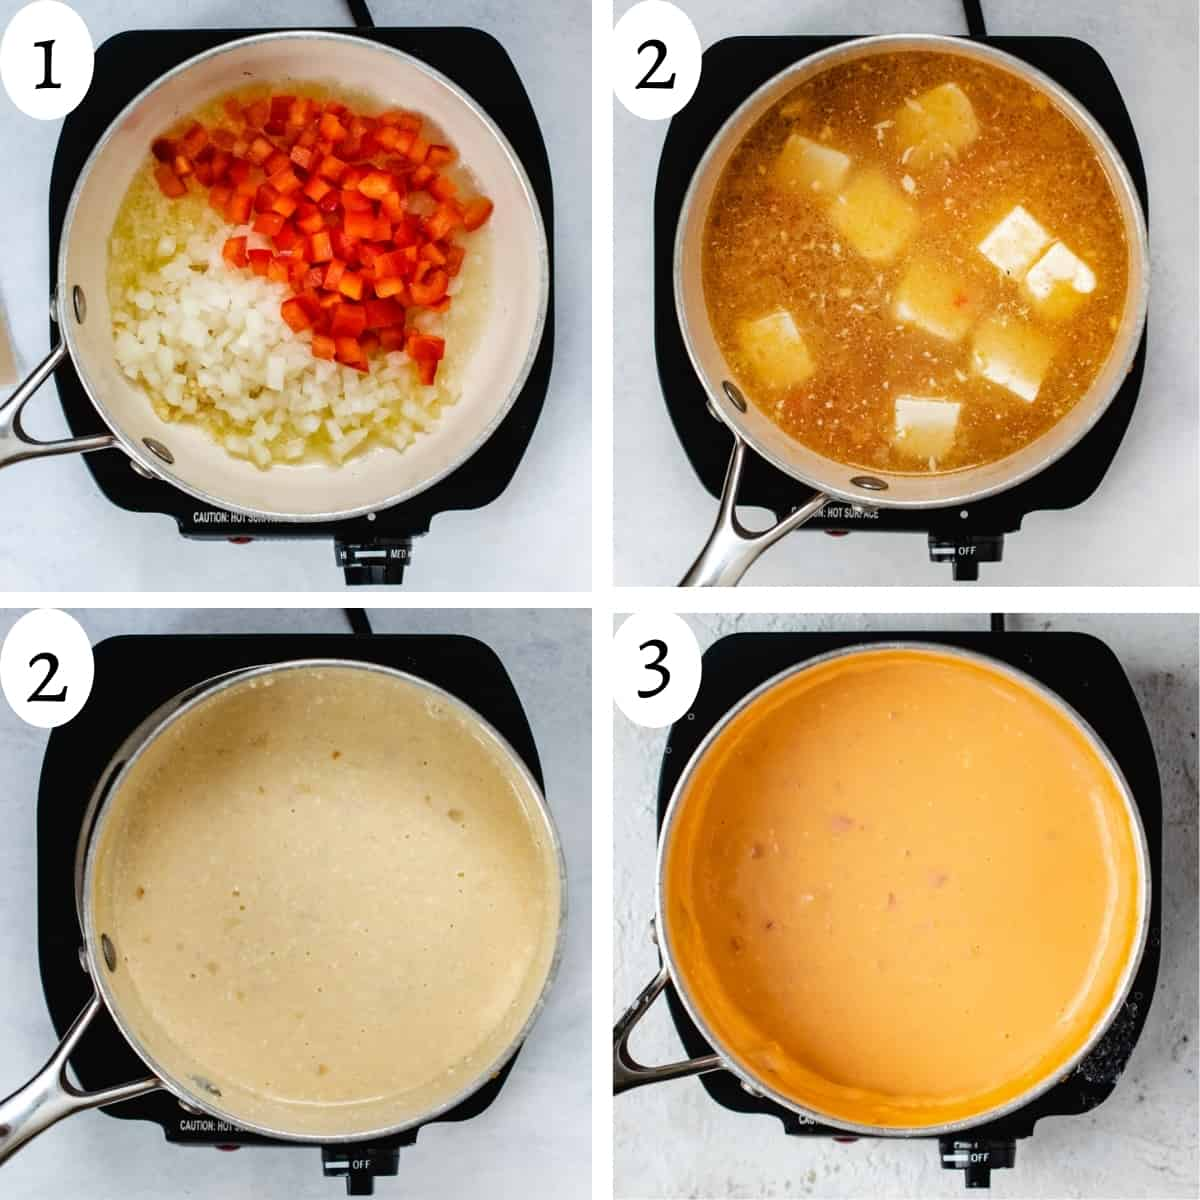 Four step image collage showing the steps to making beer cheese.